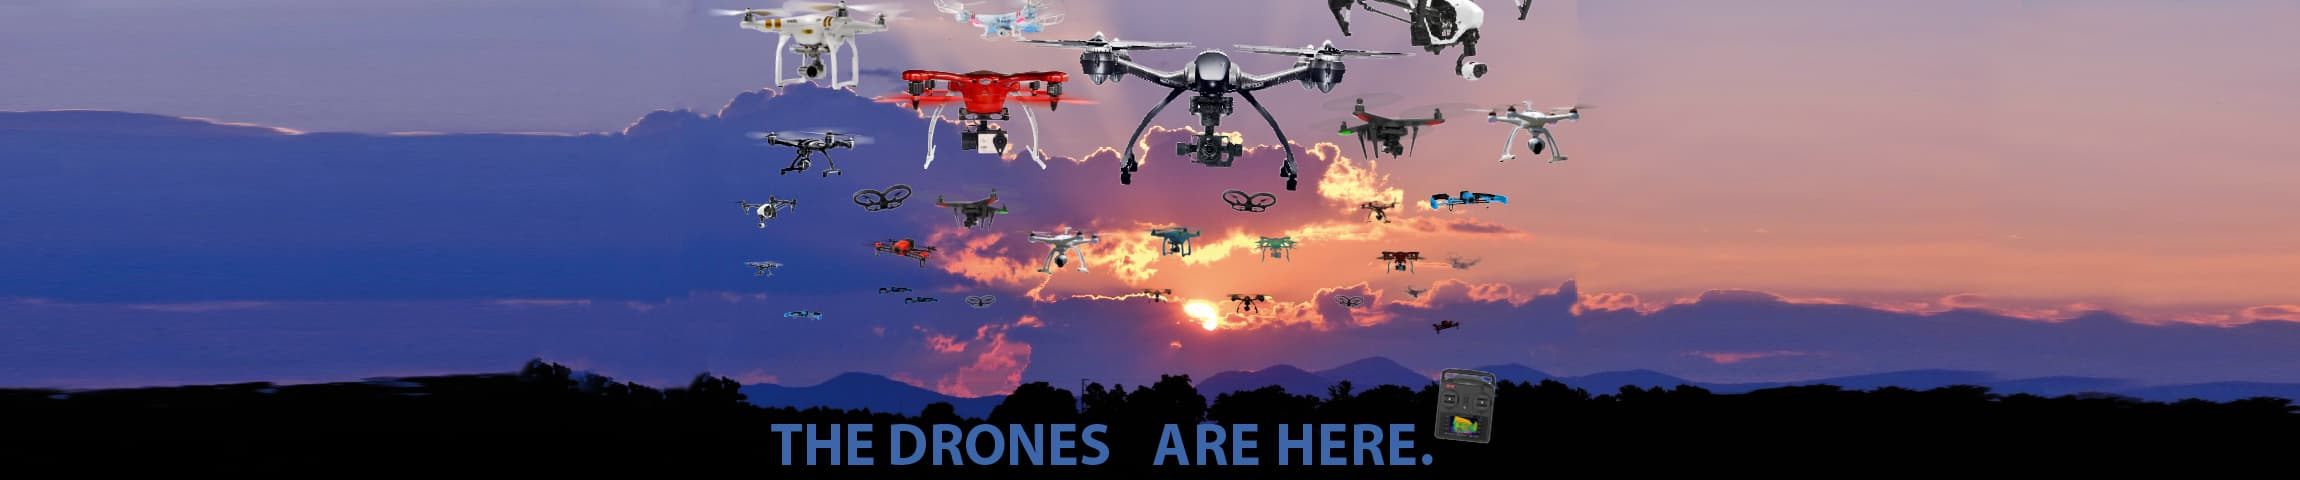 Drone Are Here